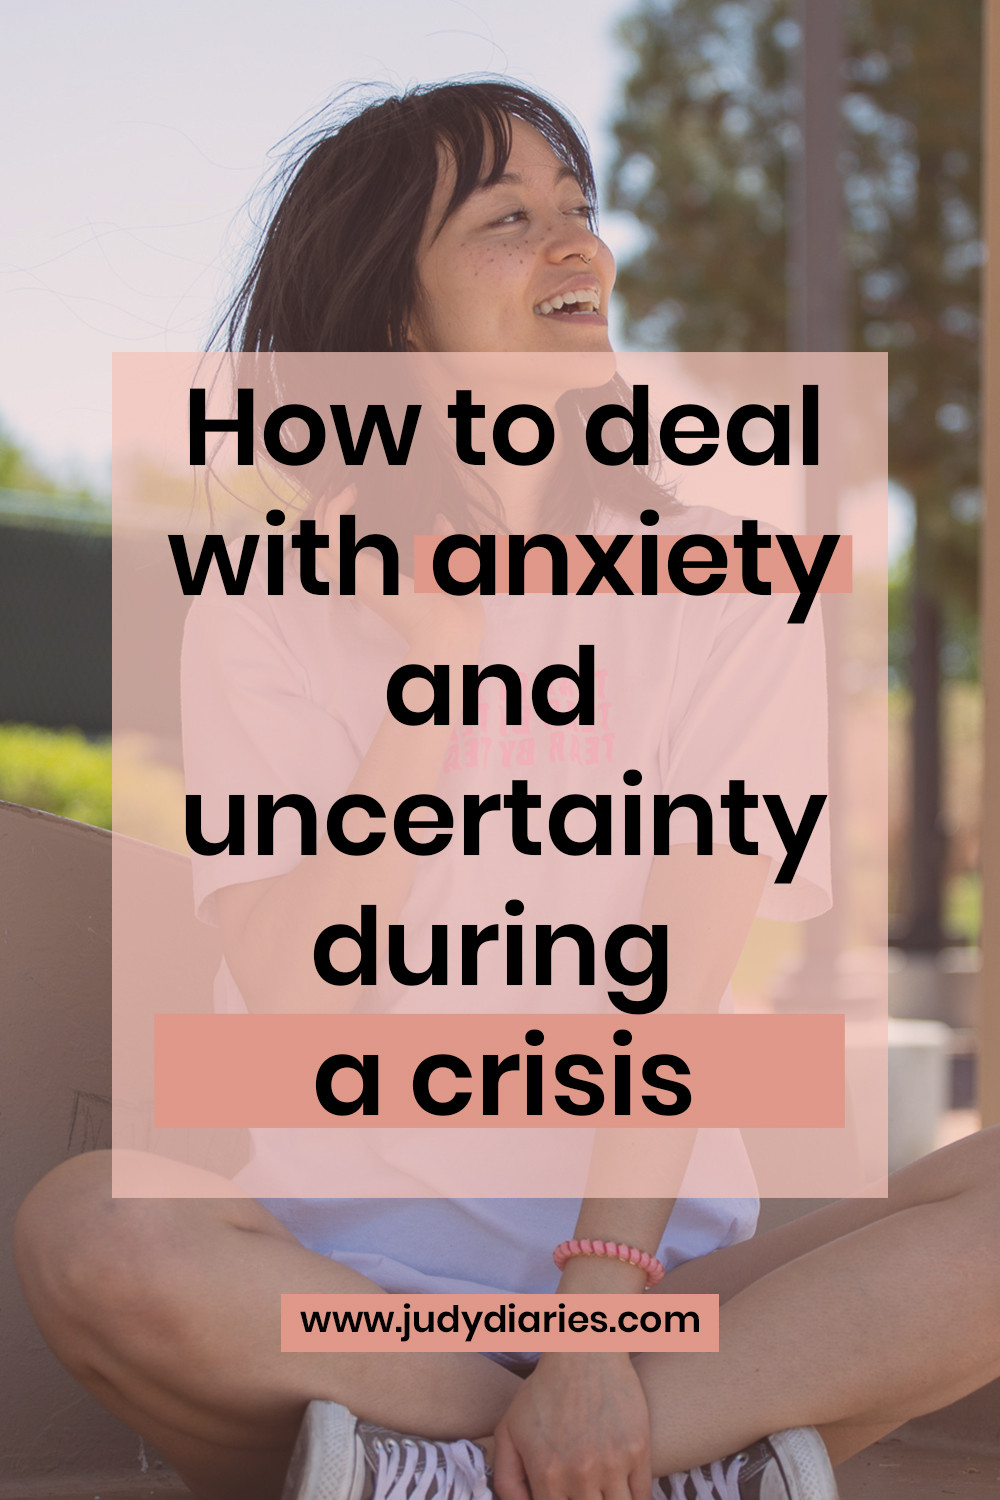 How to deal with anxiety and uncertainty during a crisis